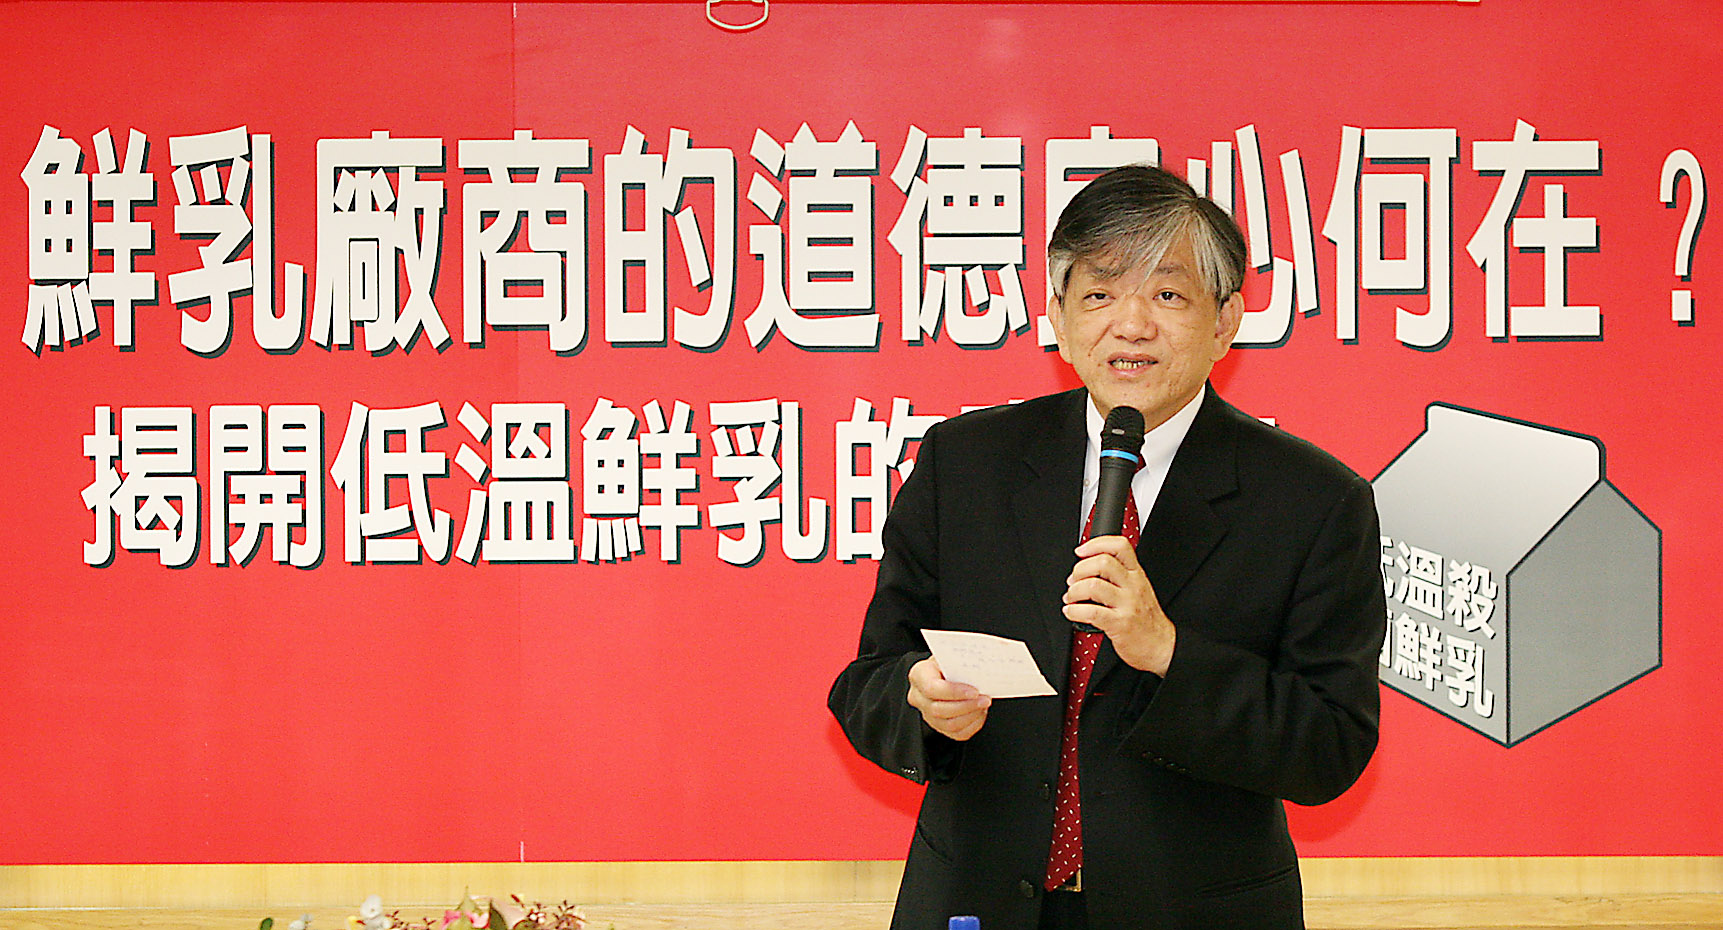 """Luis Ko, I-Mei Foods Co., Ltd. general manager, speaks at a press conference July 27, 2006, urging """"Ton Yi""""  to describe its low-temperature pasteuriz..."""